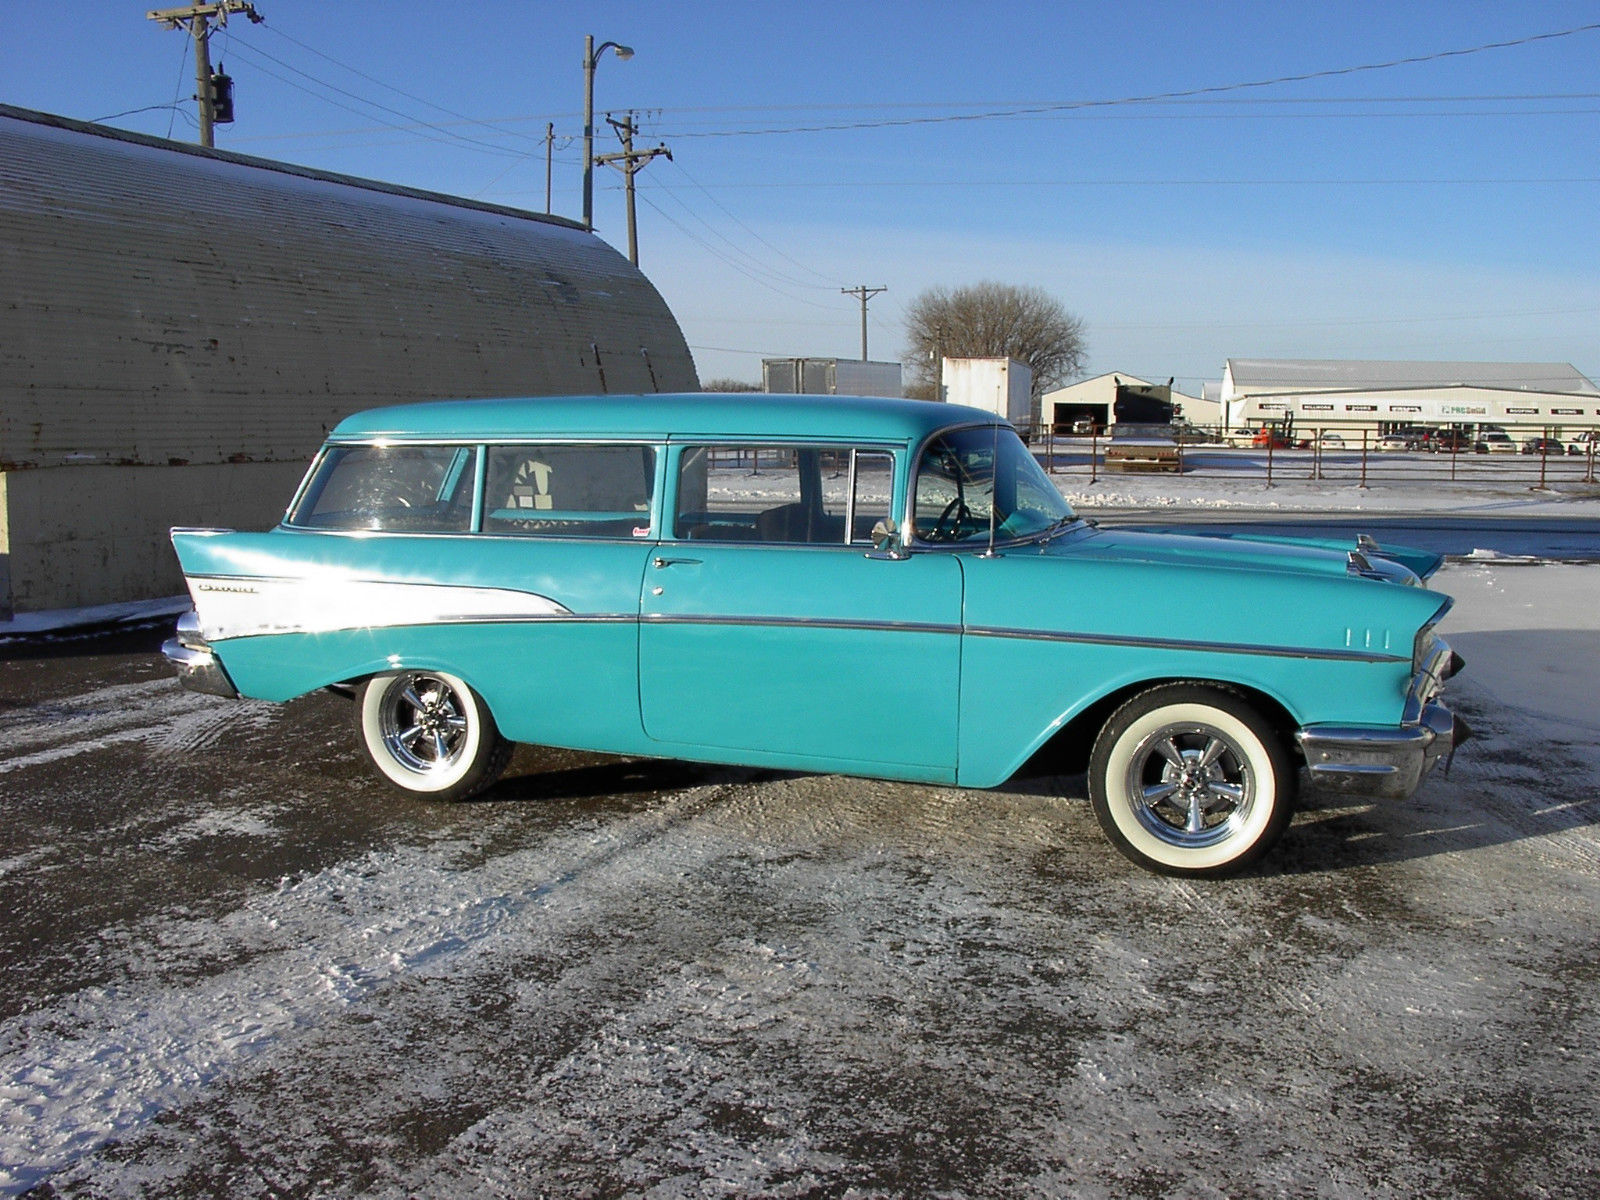 1957 57 Chevrolet Chevy Belair 150 210 Wagon Not A Nomad But Just As Bel Air Cool